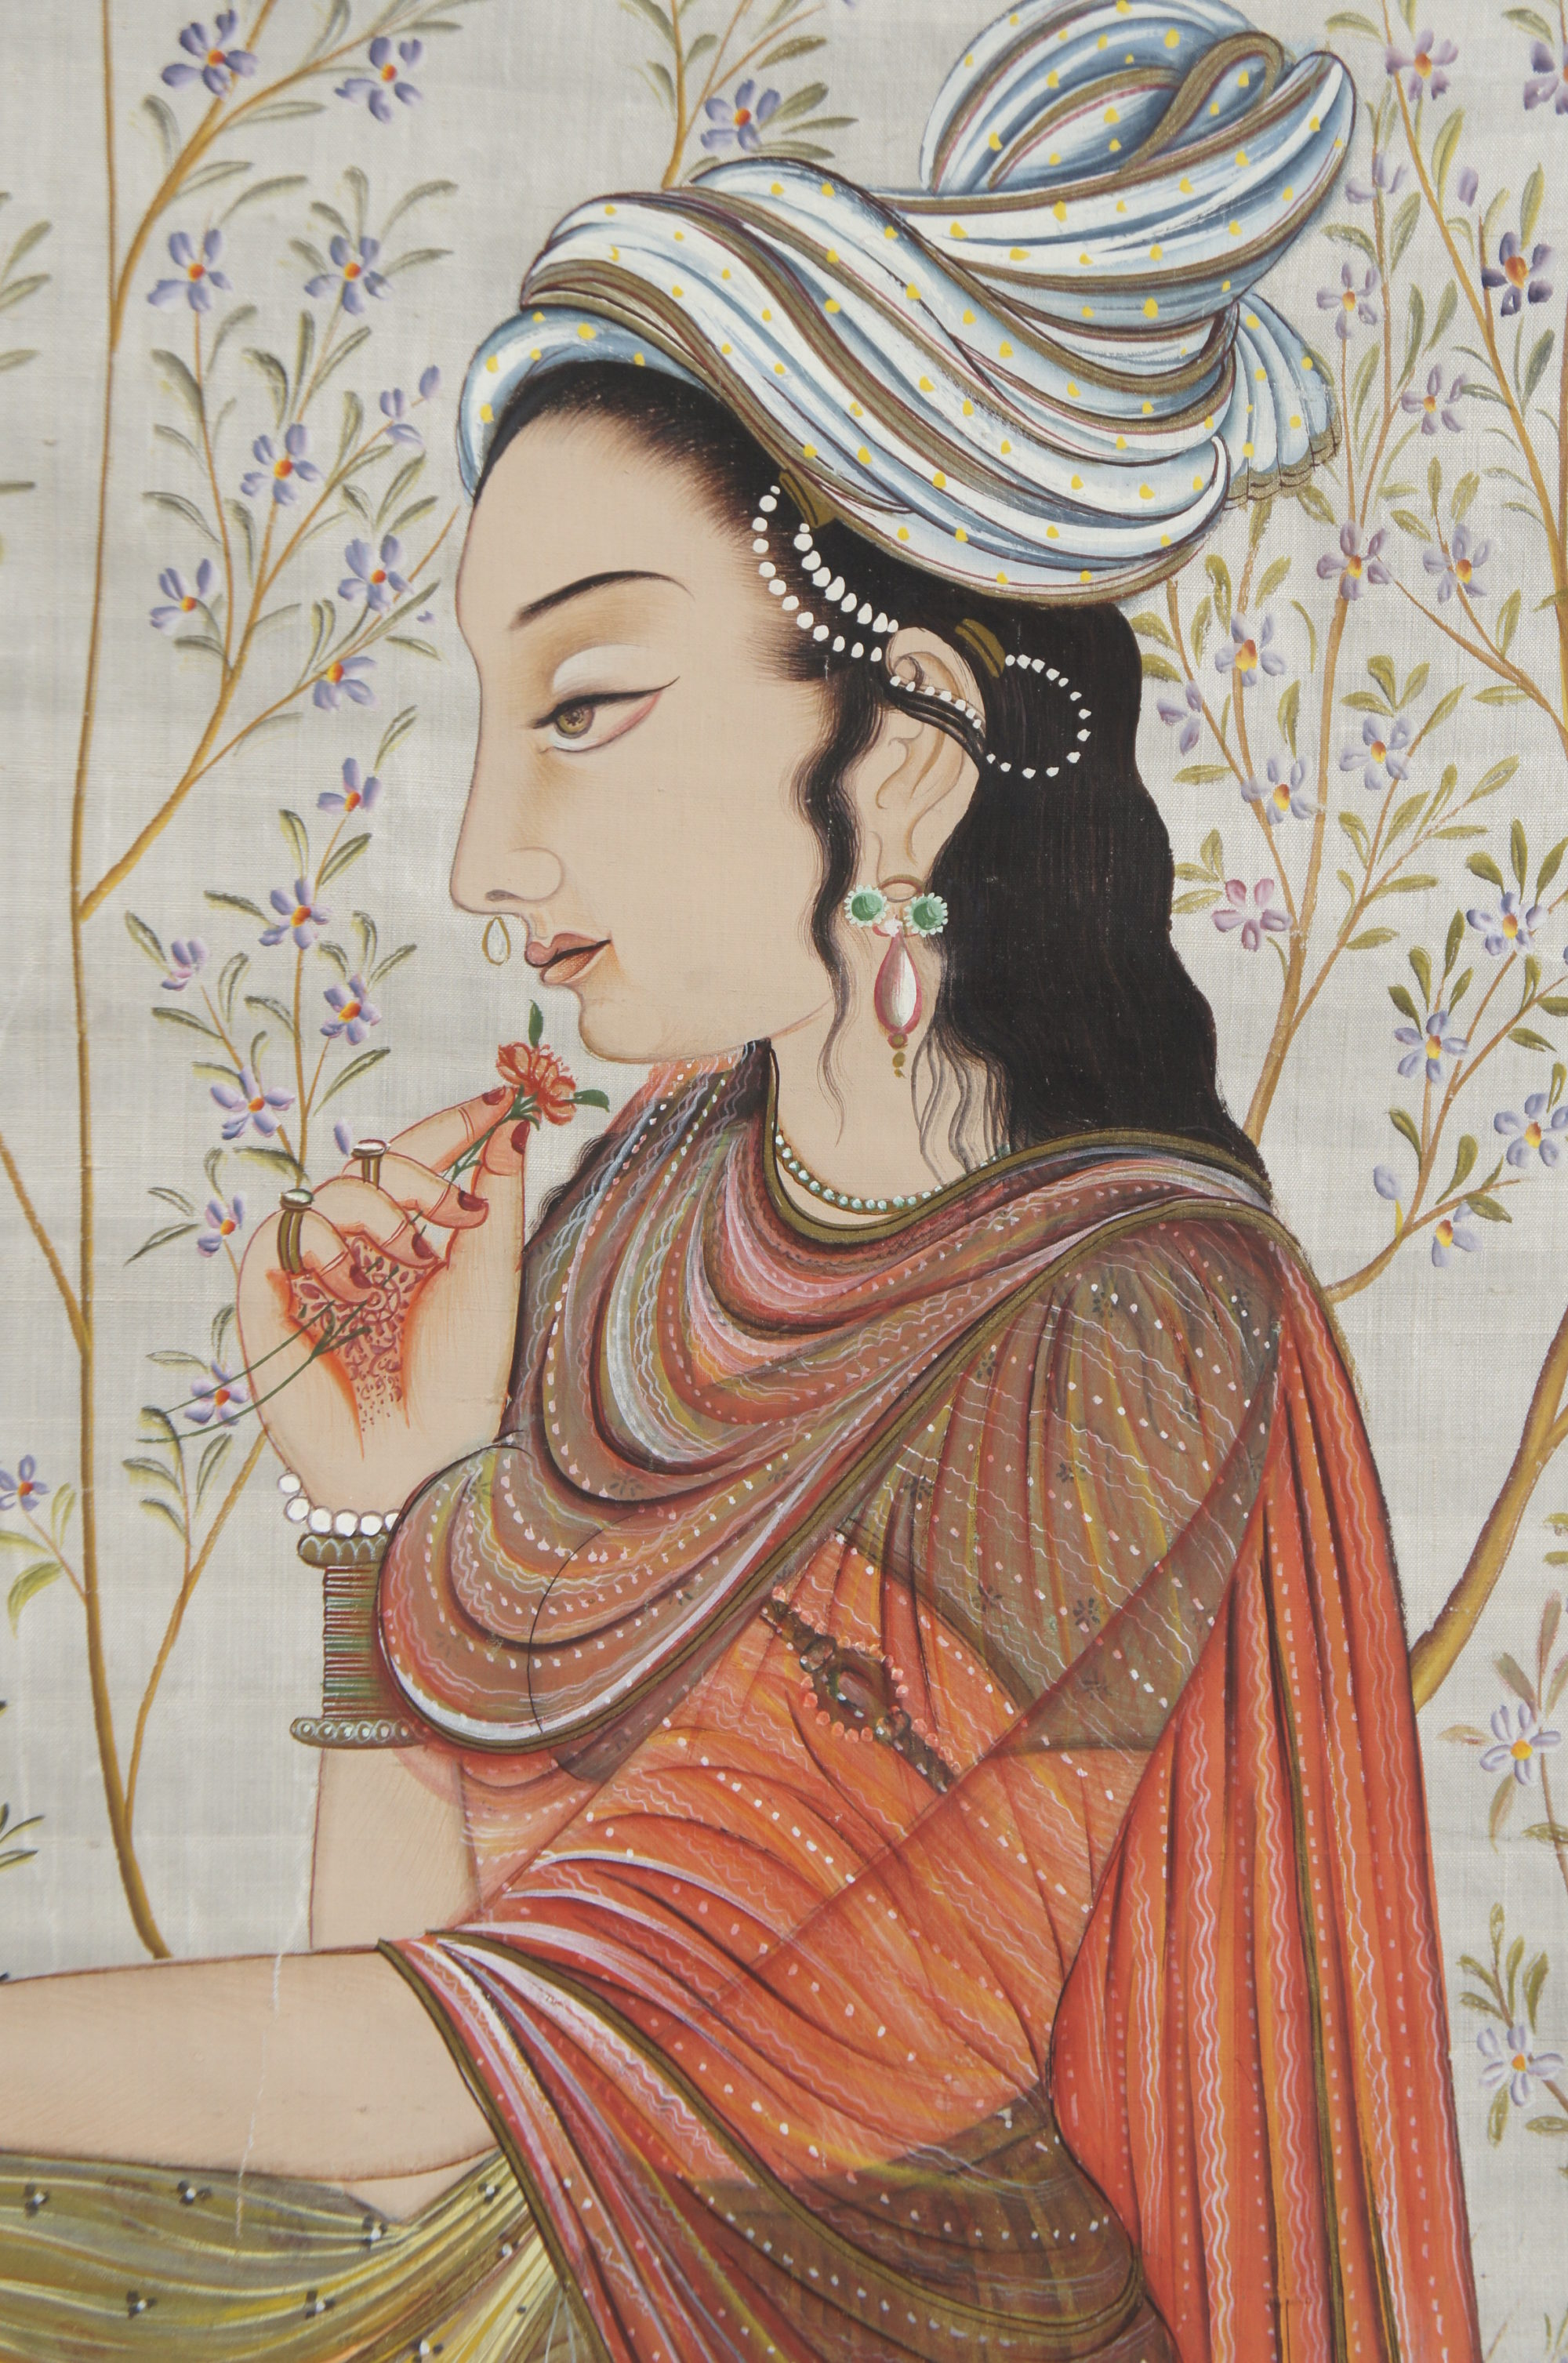 Indian Painting of Lady with Falcon on Silk.